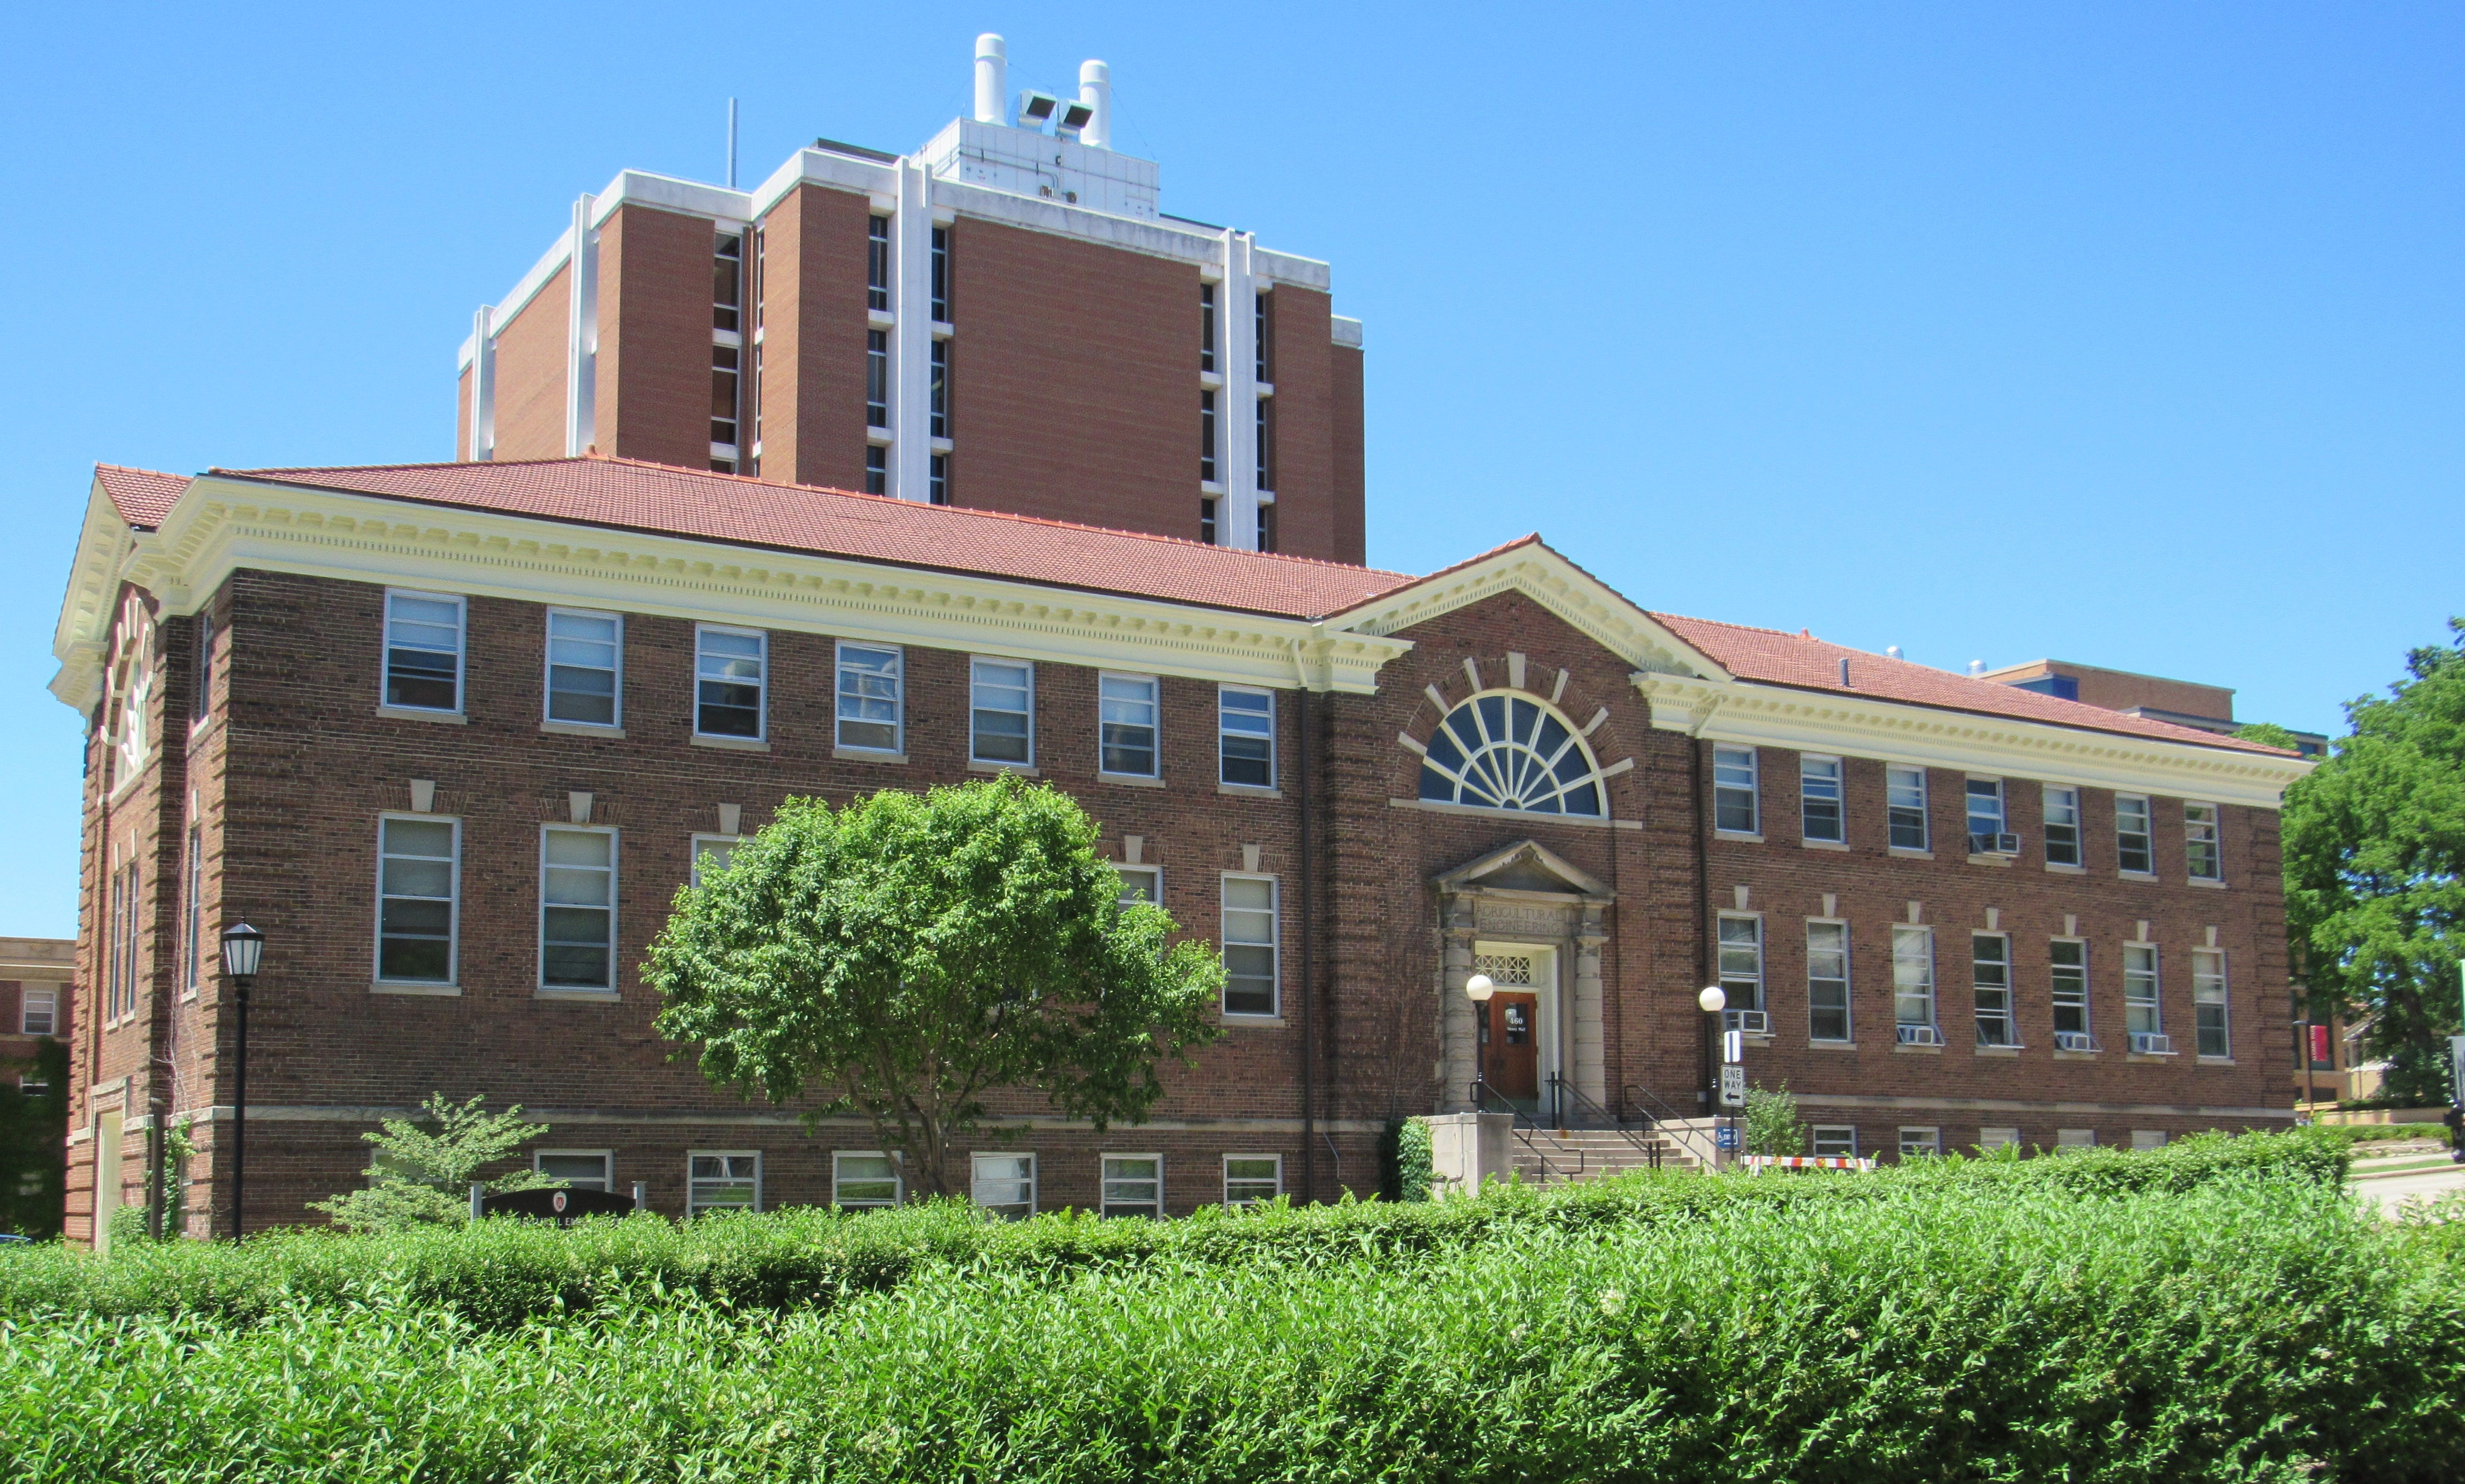 Photo of the Agricultural Engineering Building